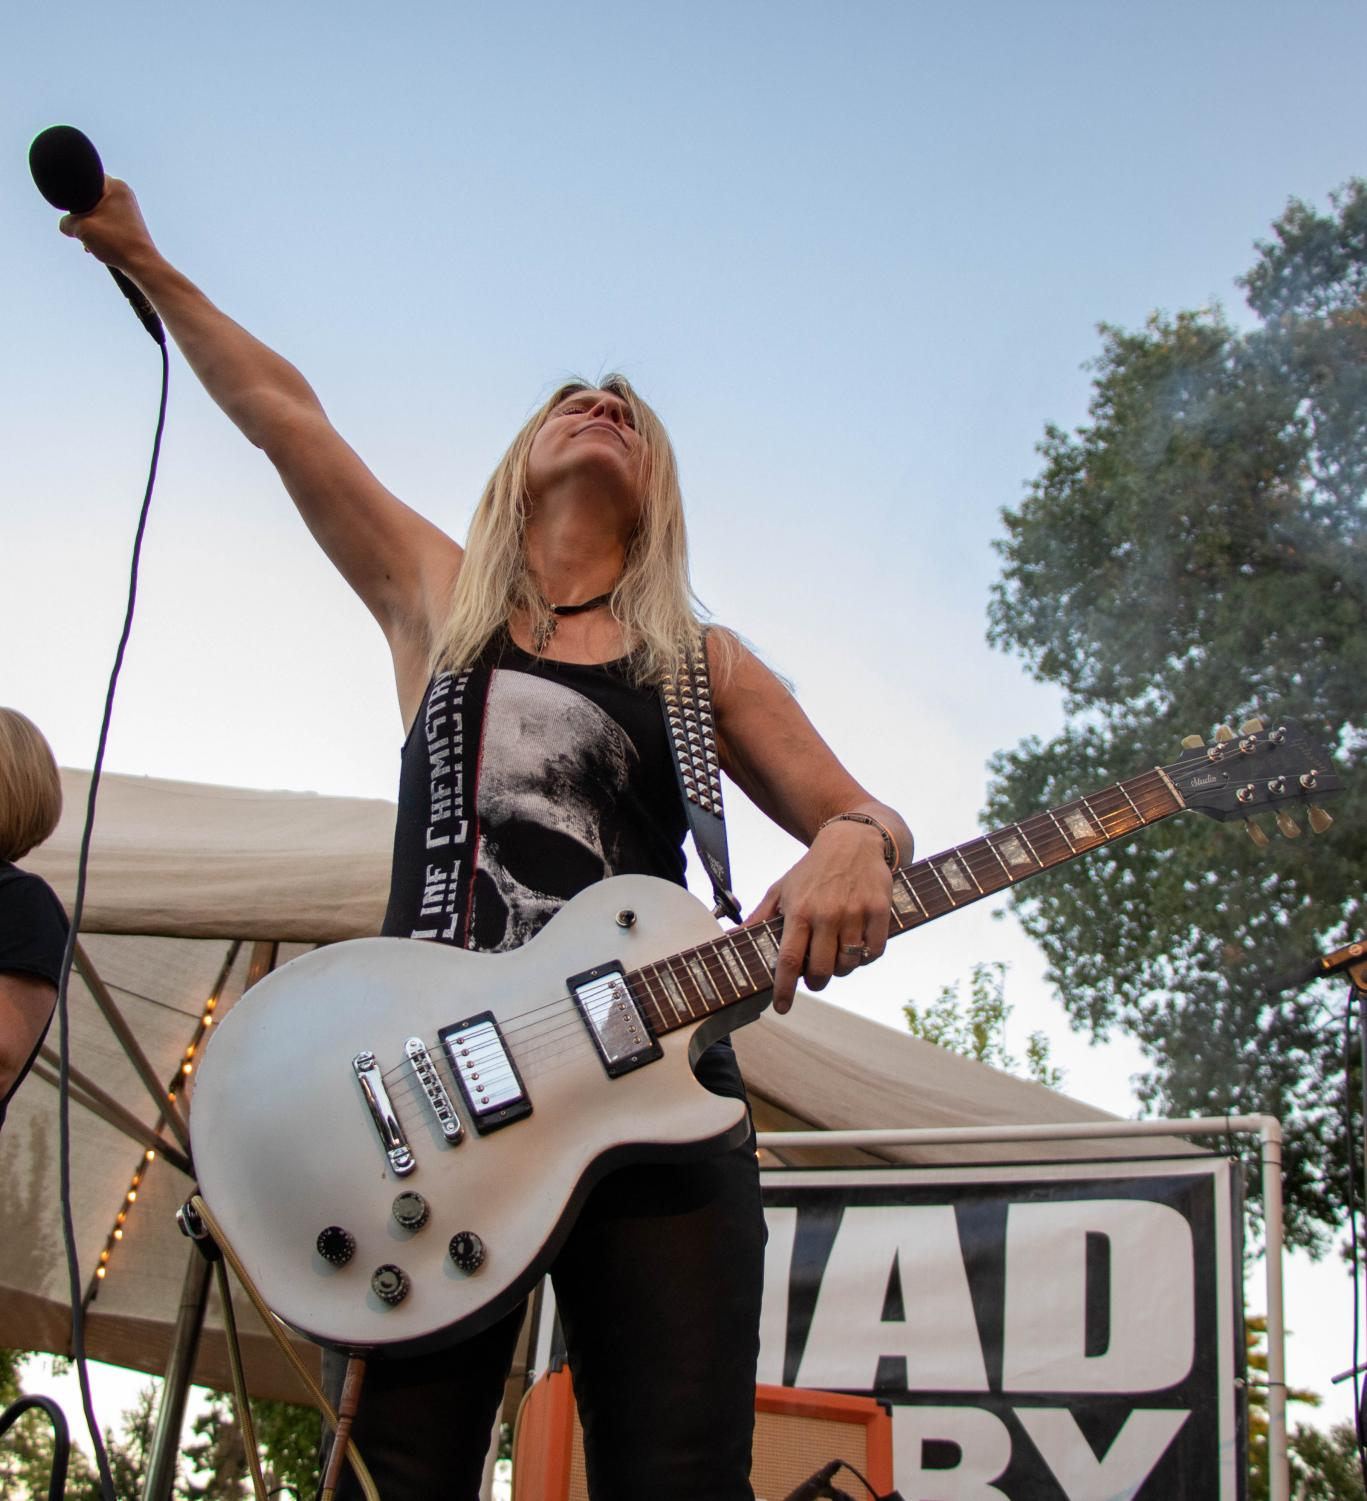 Left: Jennifer Roswold raises the microphone into the air while performing at Starlight Theatre Oct. 8. Roswold said opening for Joan Jett has been a dream of hers.